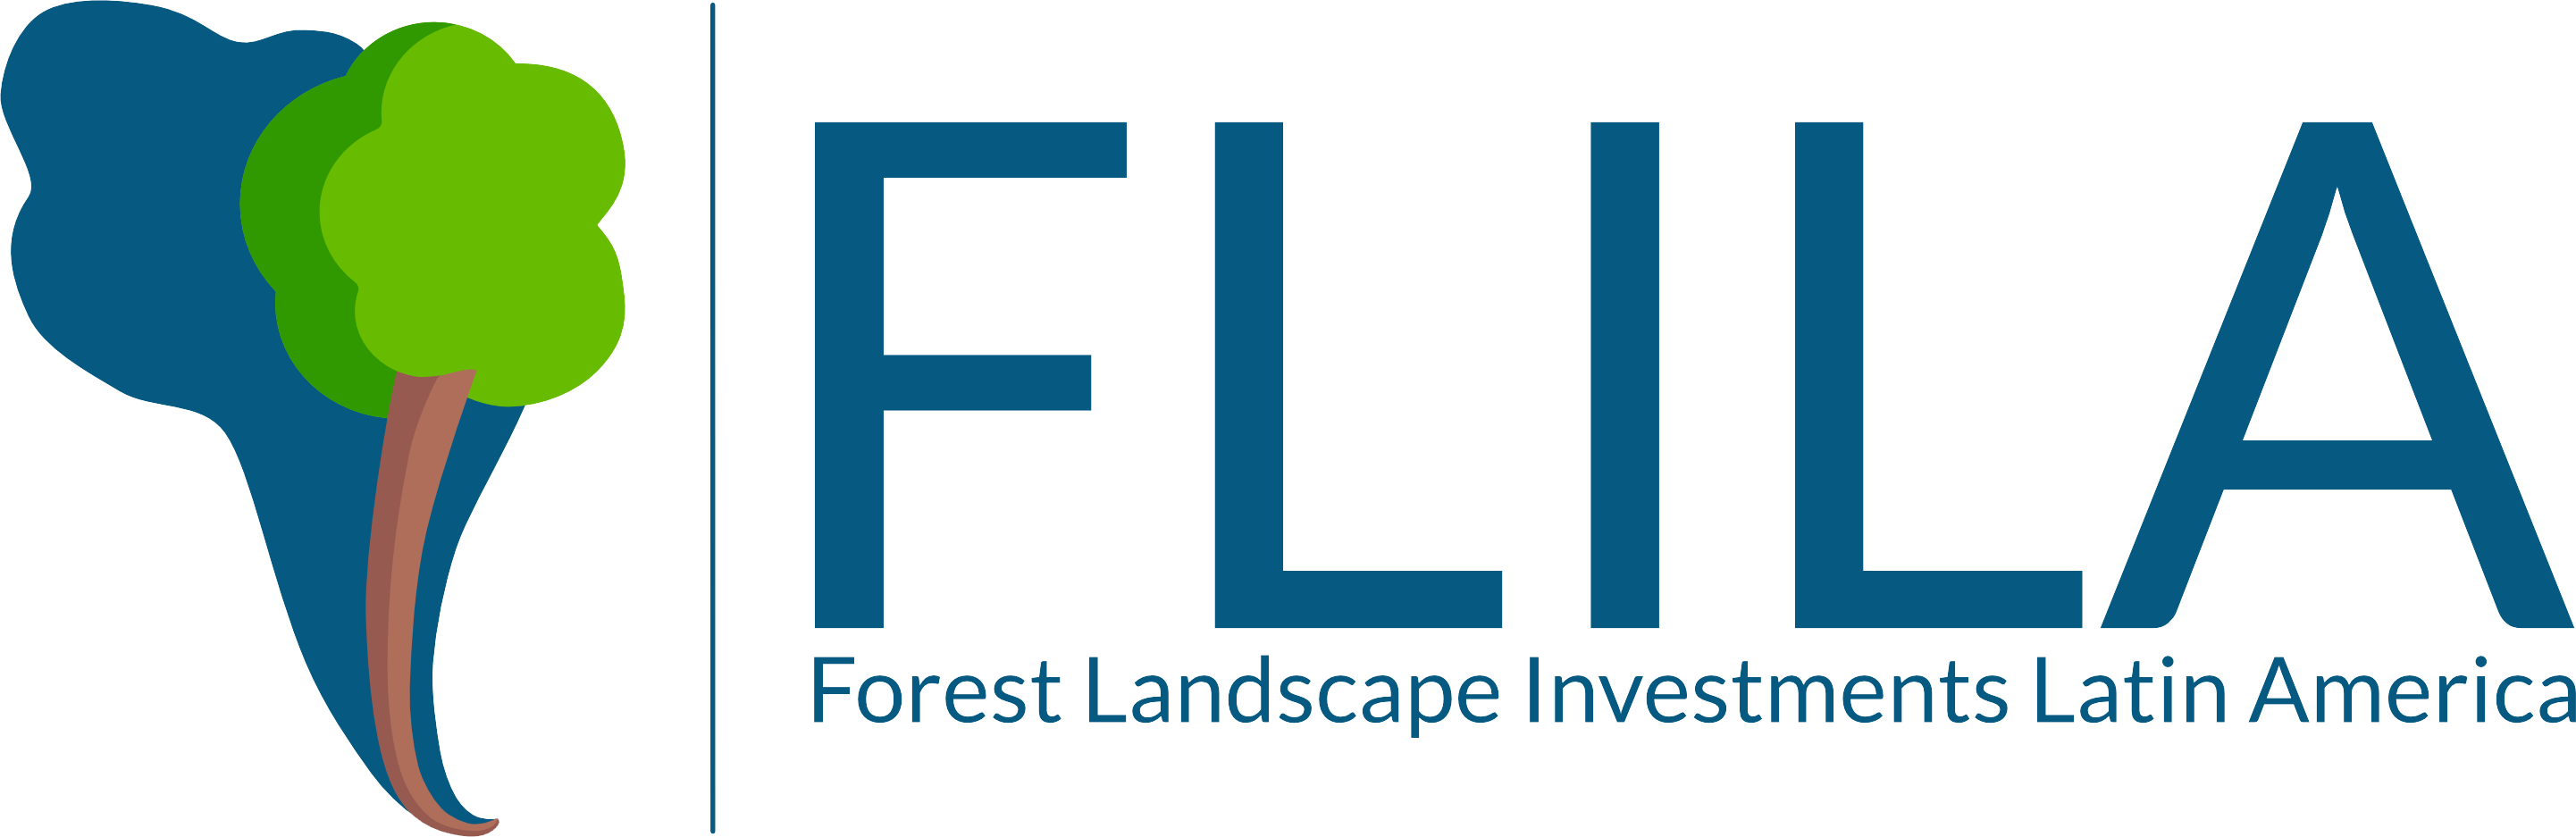 FLILA - Forest Landscape Investments in Latin America